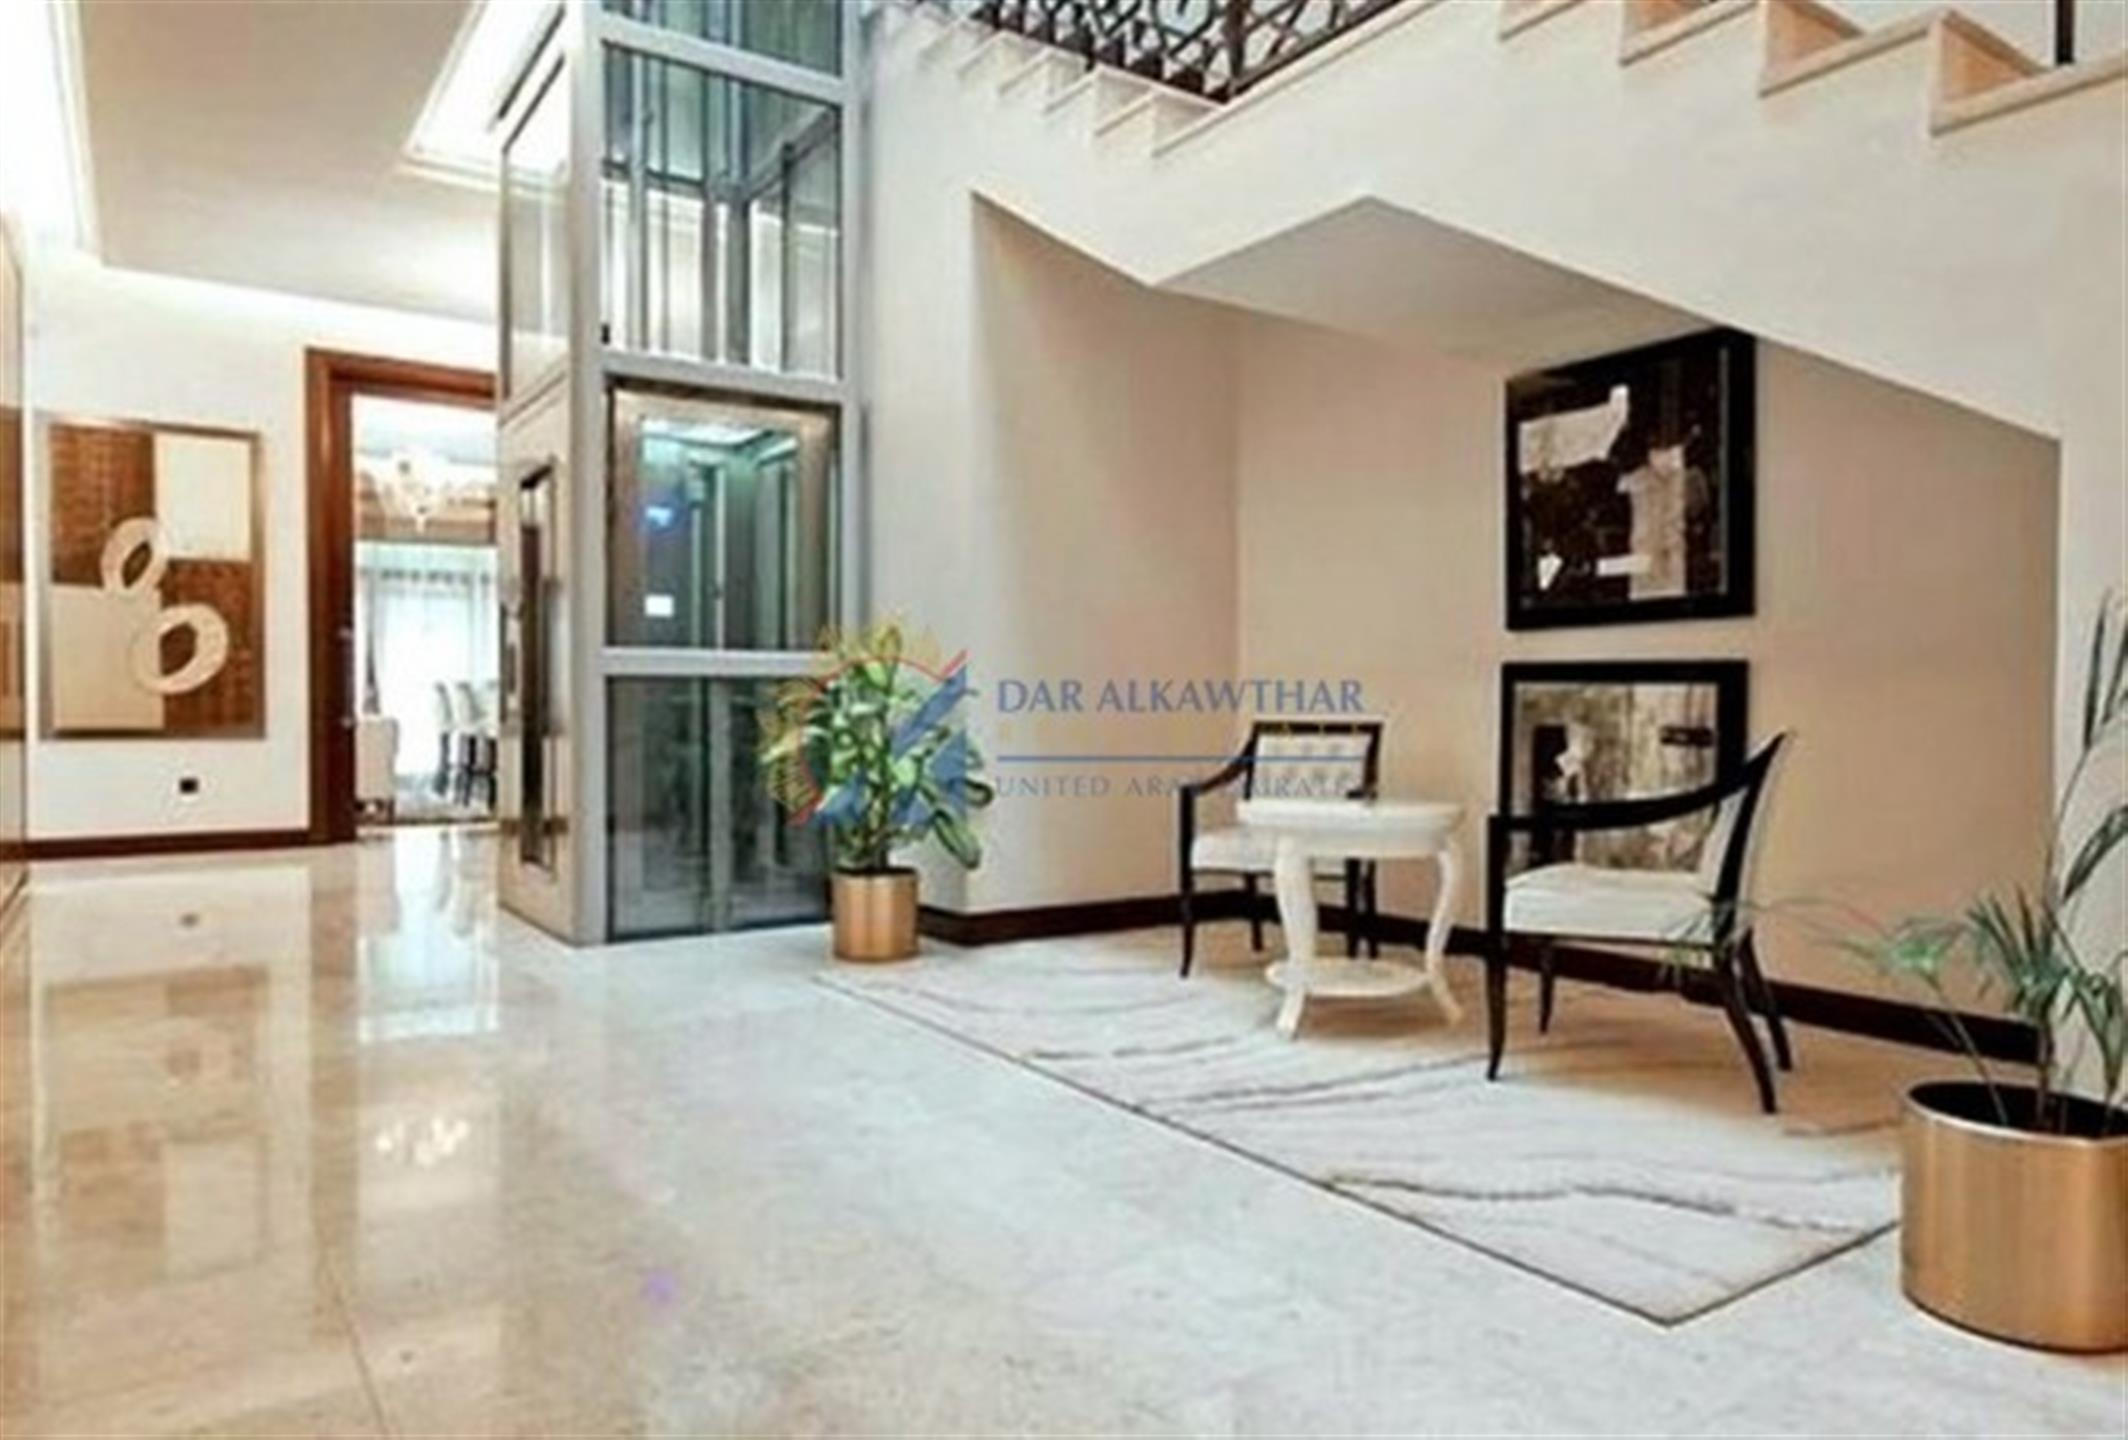 prime propertiess space for rent, apartment, dubai luxury houses